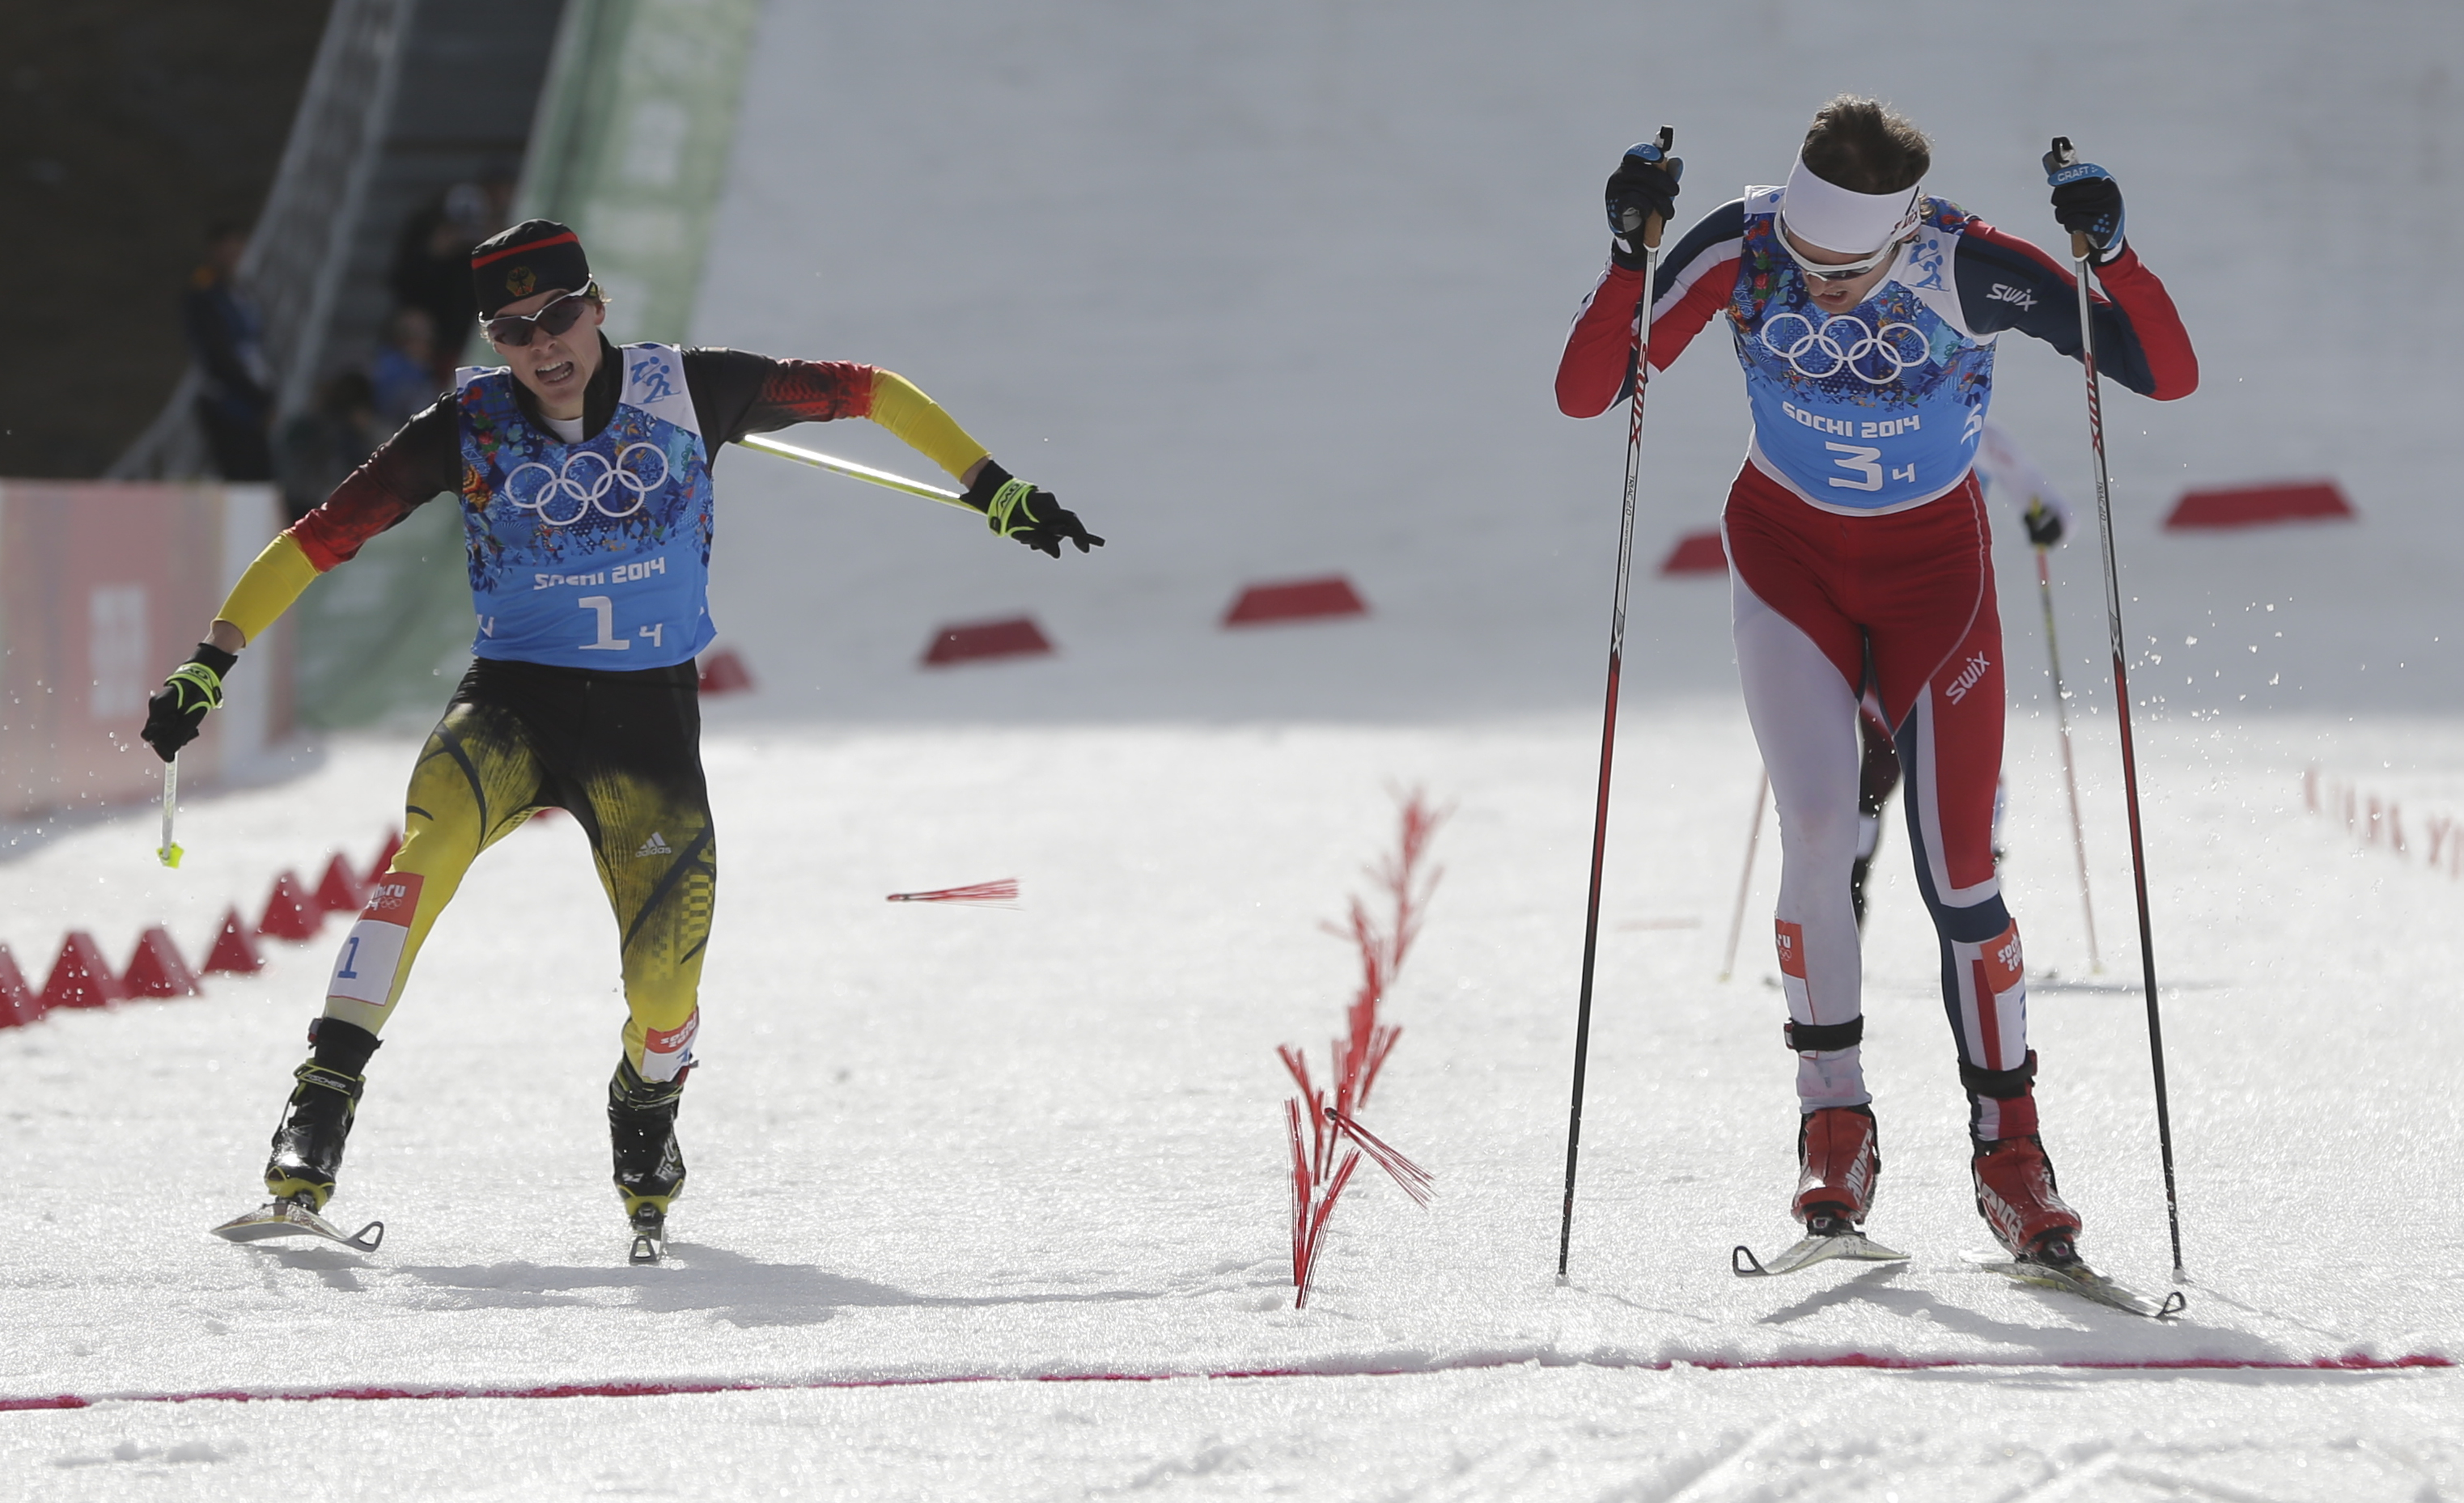 Norway's Joergen Graabak, right, crosses the finish line to win gold ahead of silver medal winner Germany's Fabian Riessle, left, during the cross-country portion of the Nordic combined Gundersen large hill team competition at the 2014 Winter Olympics, Thursday, Feb. 20, 2014, in Krasnaya Polyana, Russia. (AP Photo/Matthias Schrader)